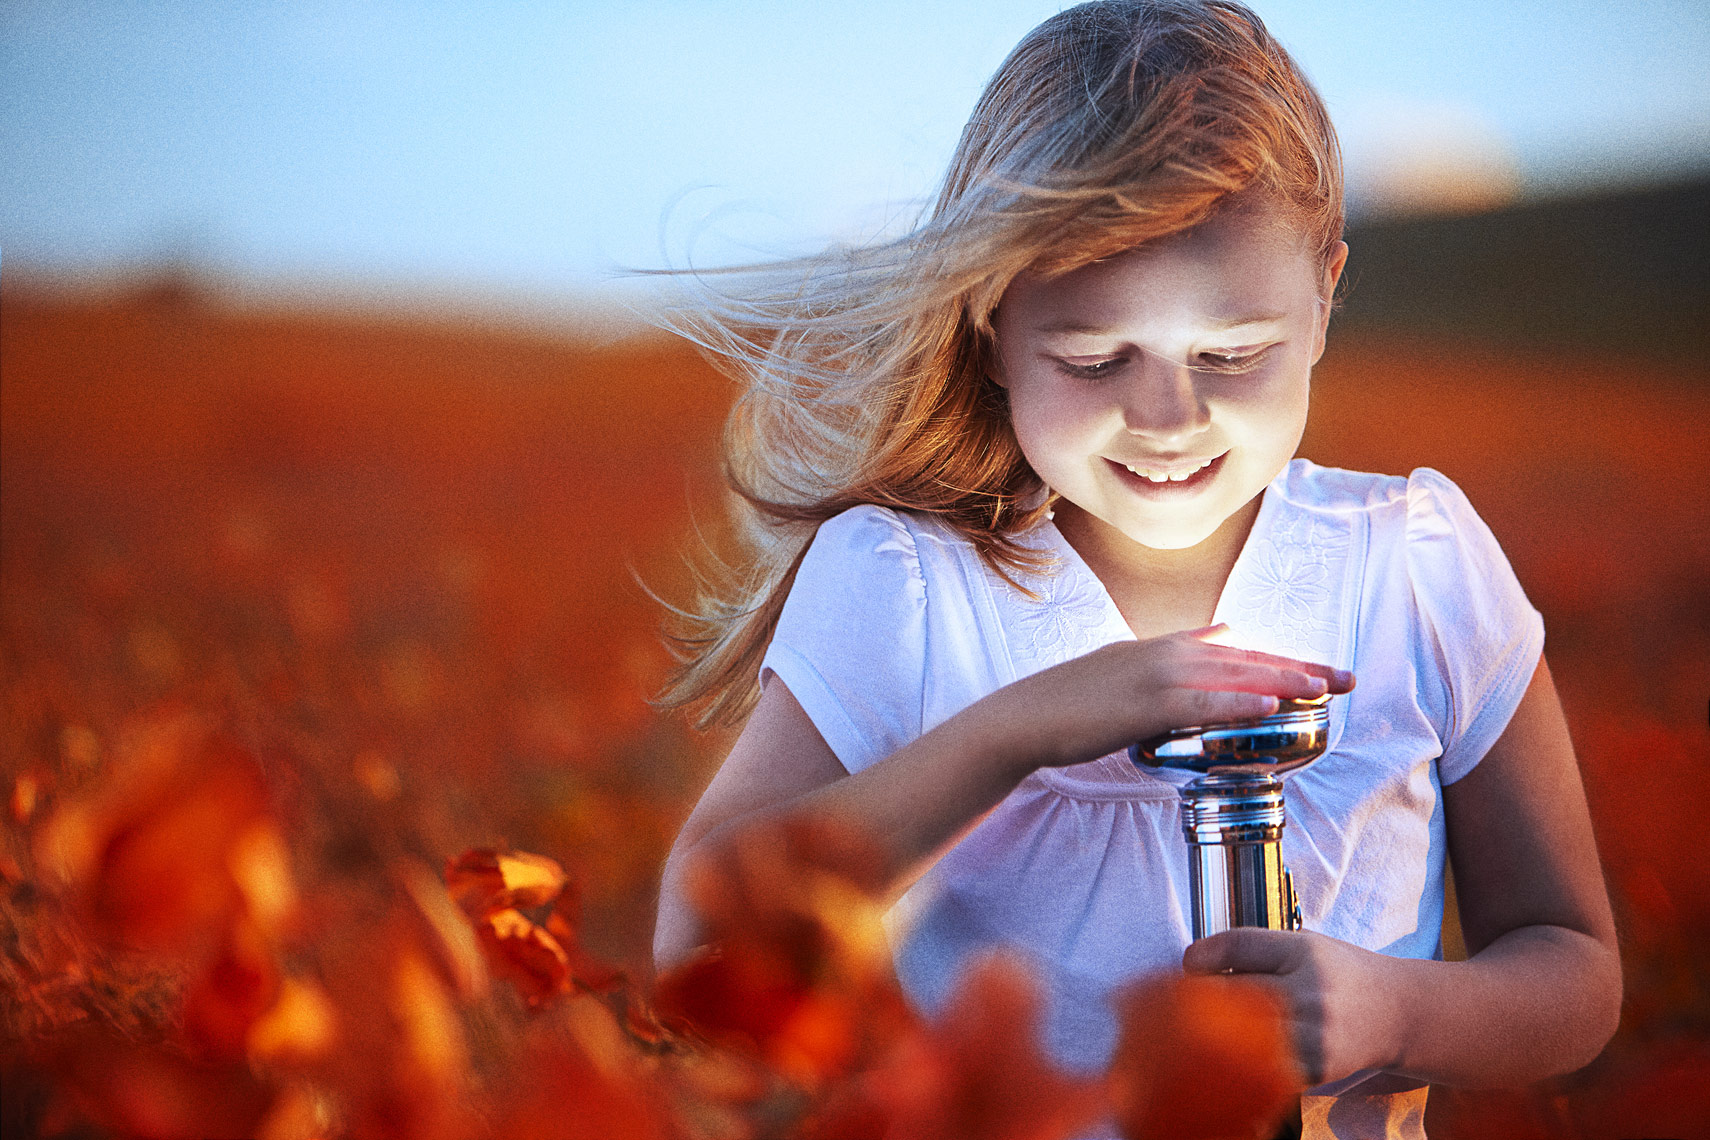 Girl-w-flashlight-in-poppies-HR.jpg